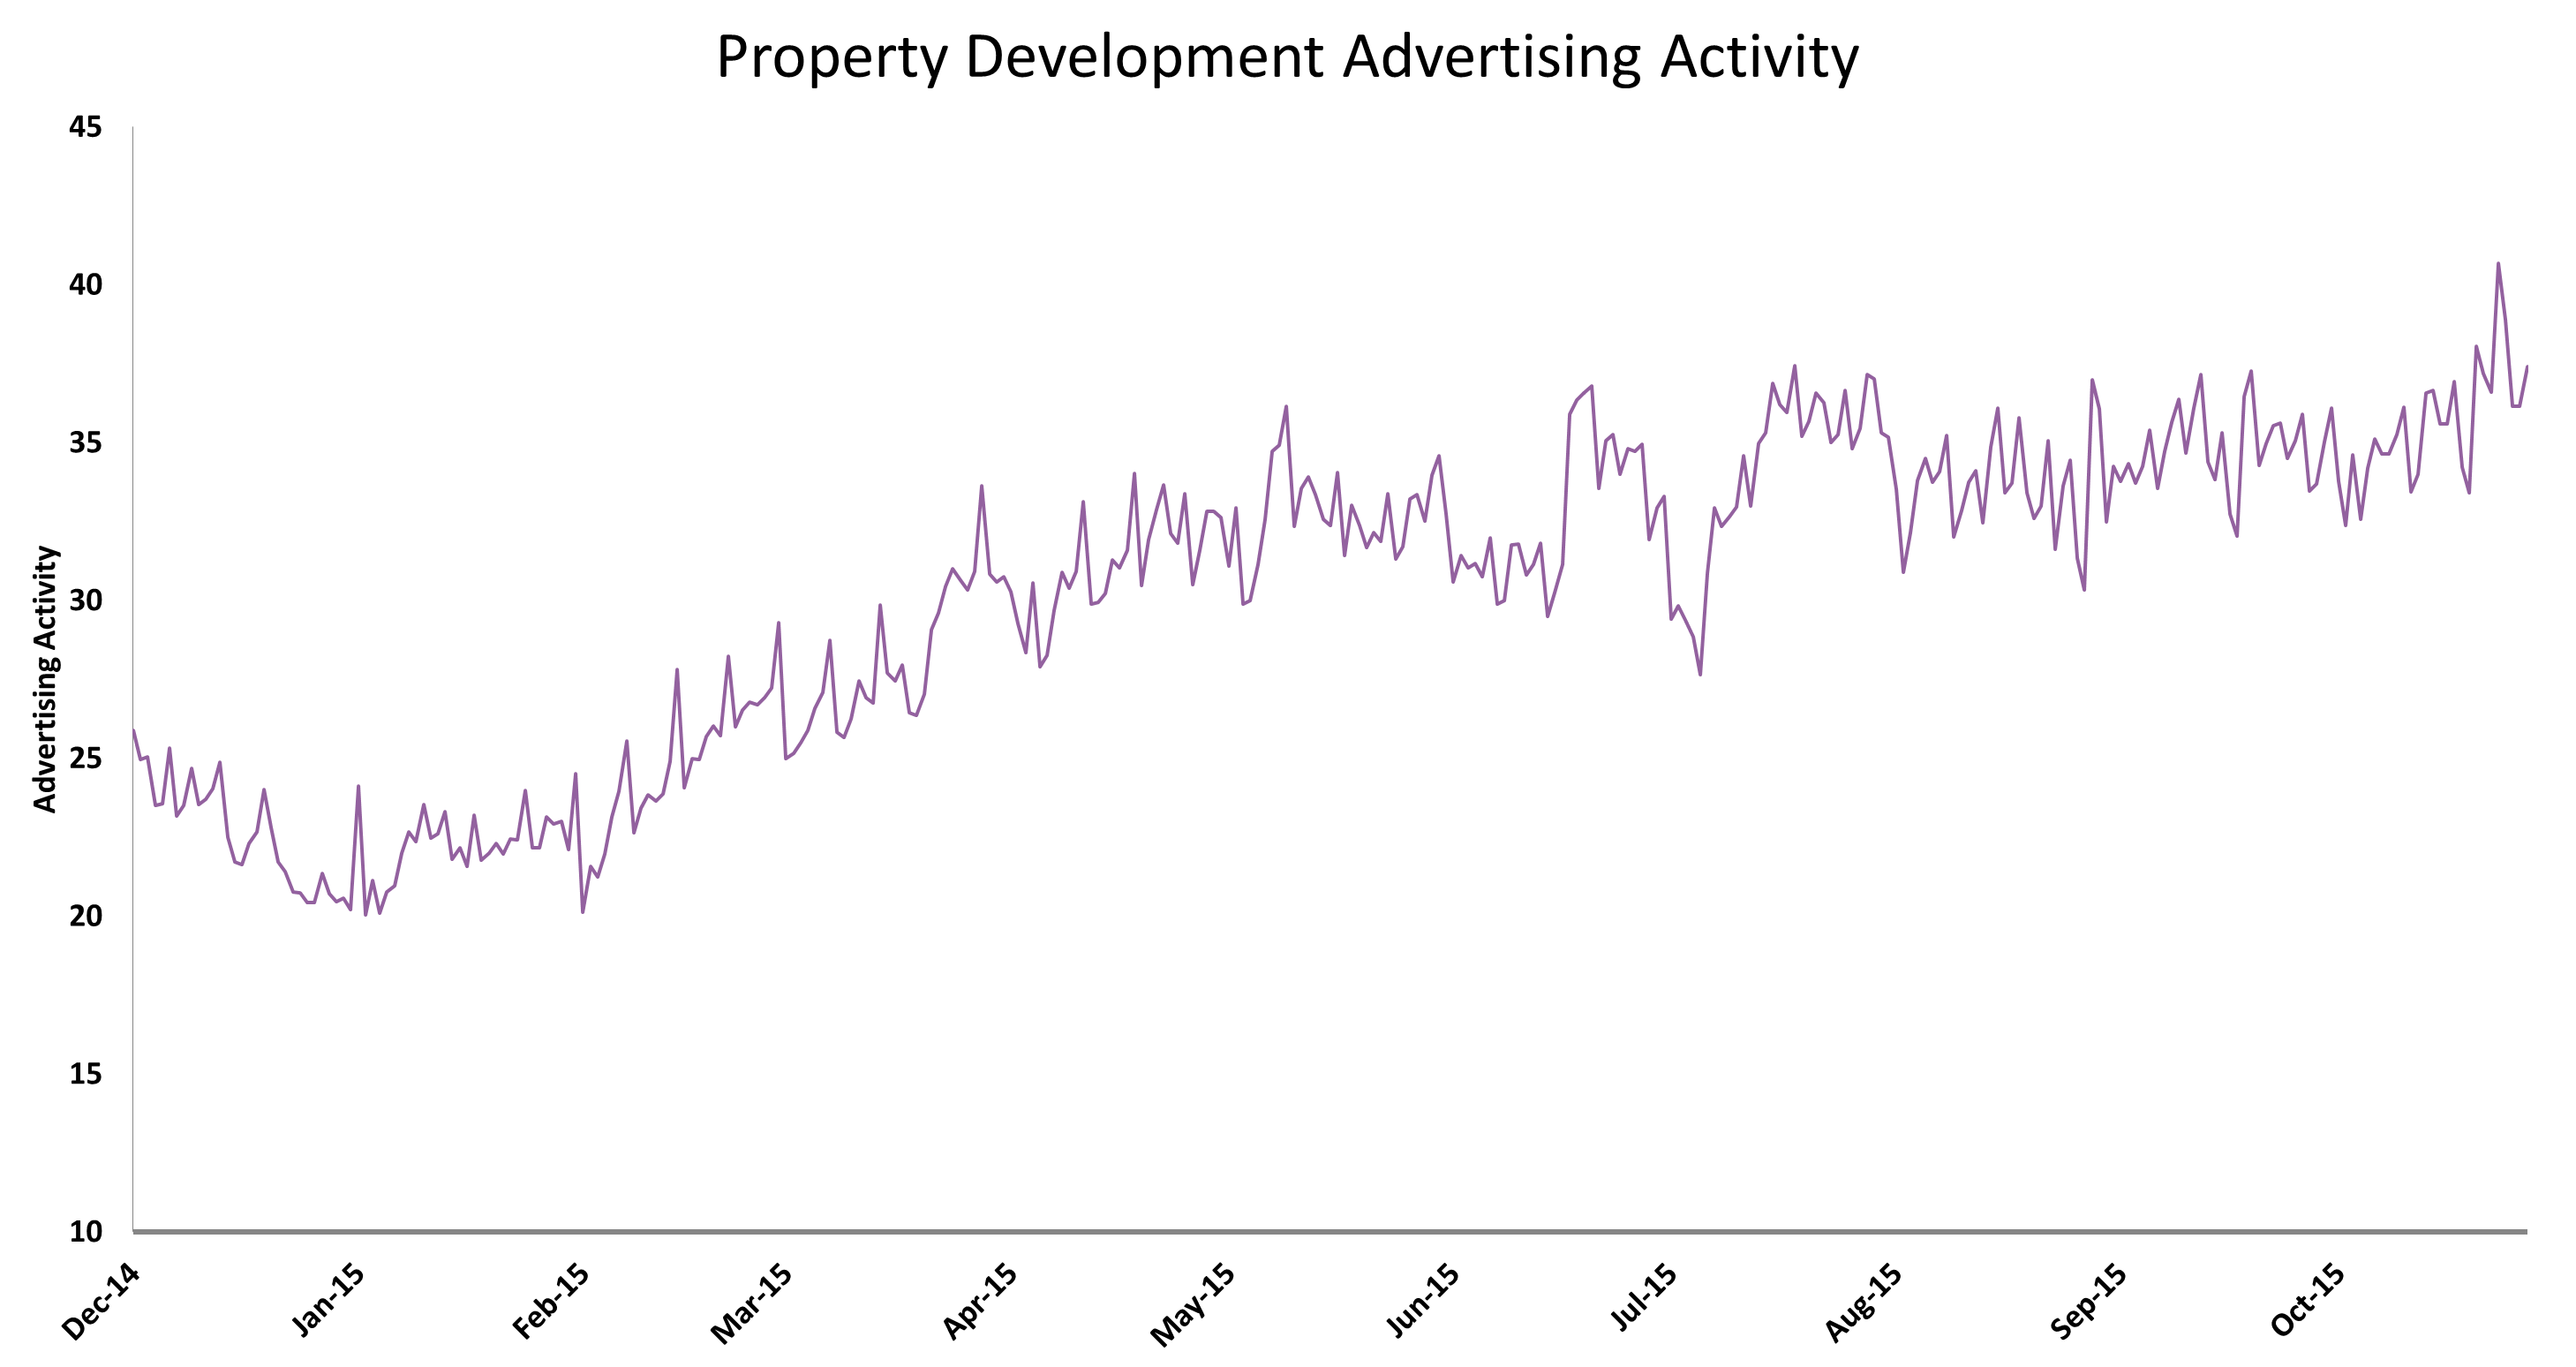 Property Development Advertising Activity